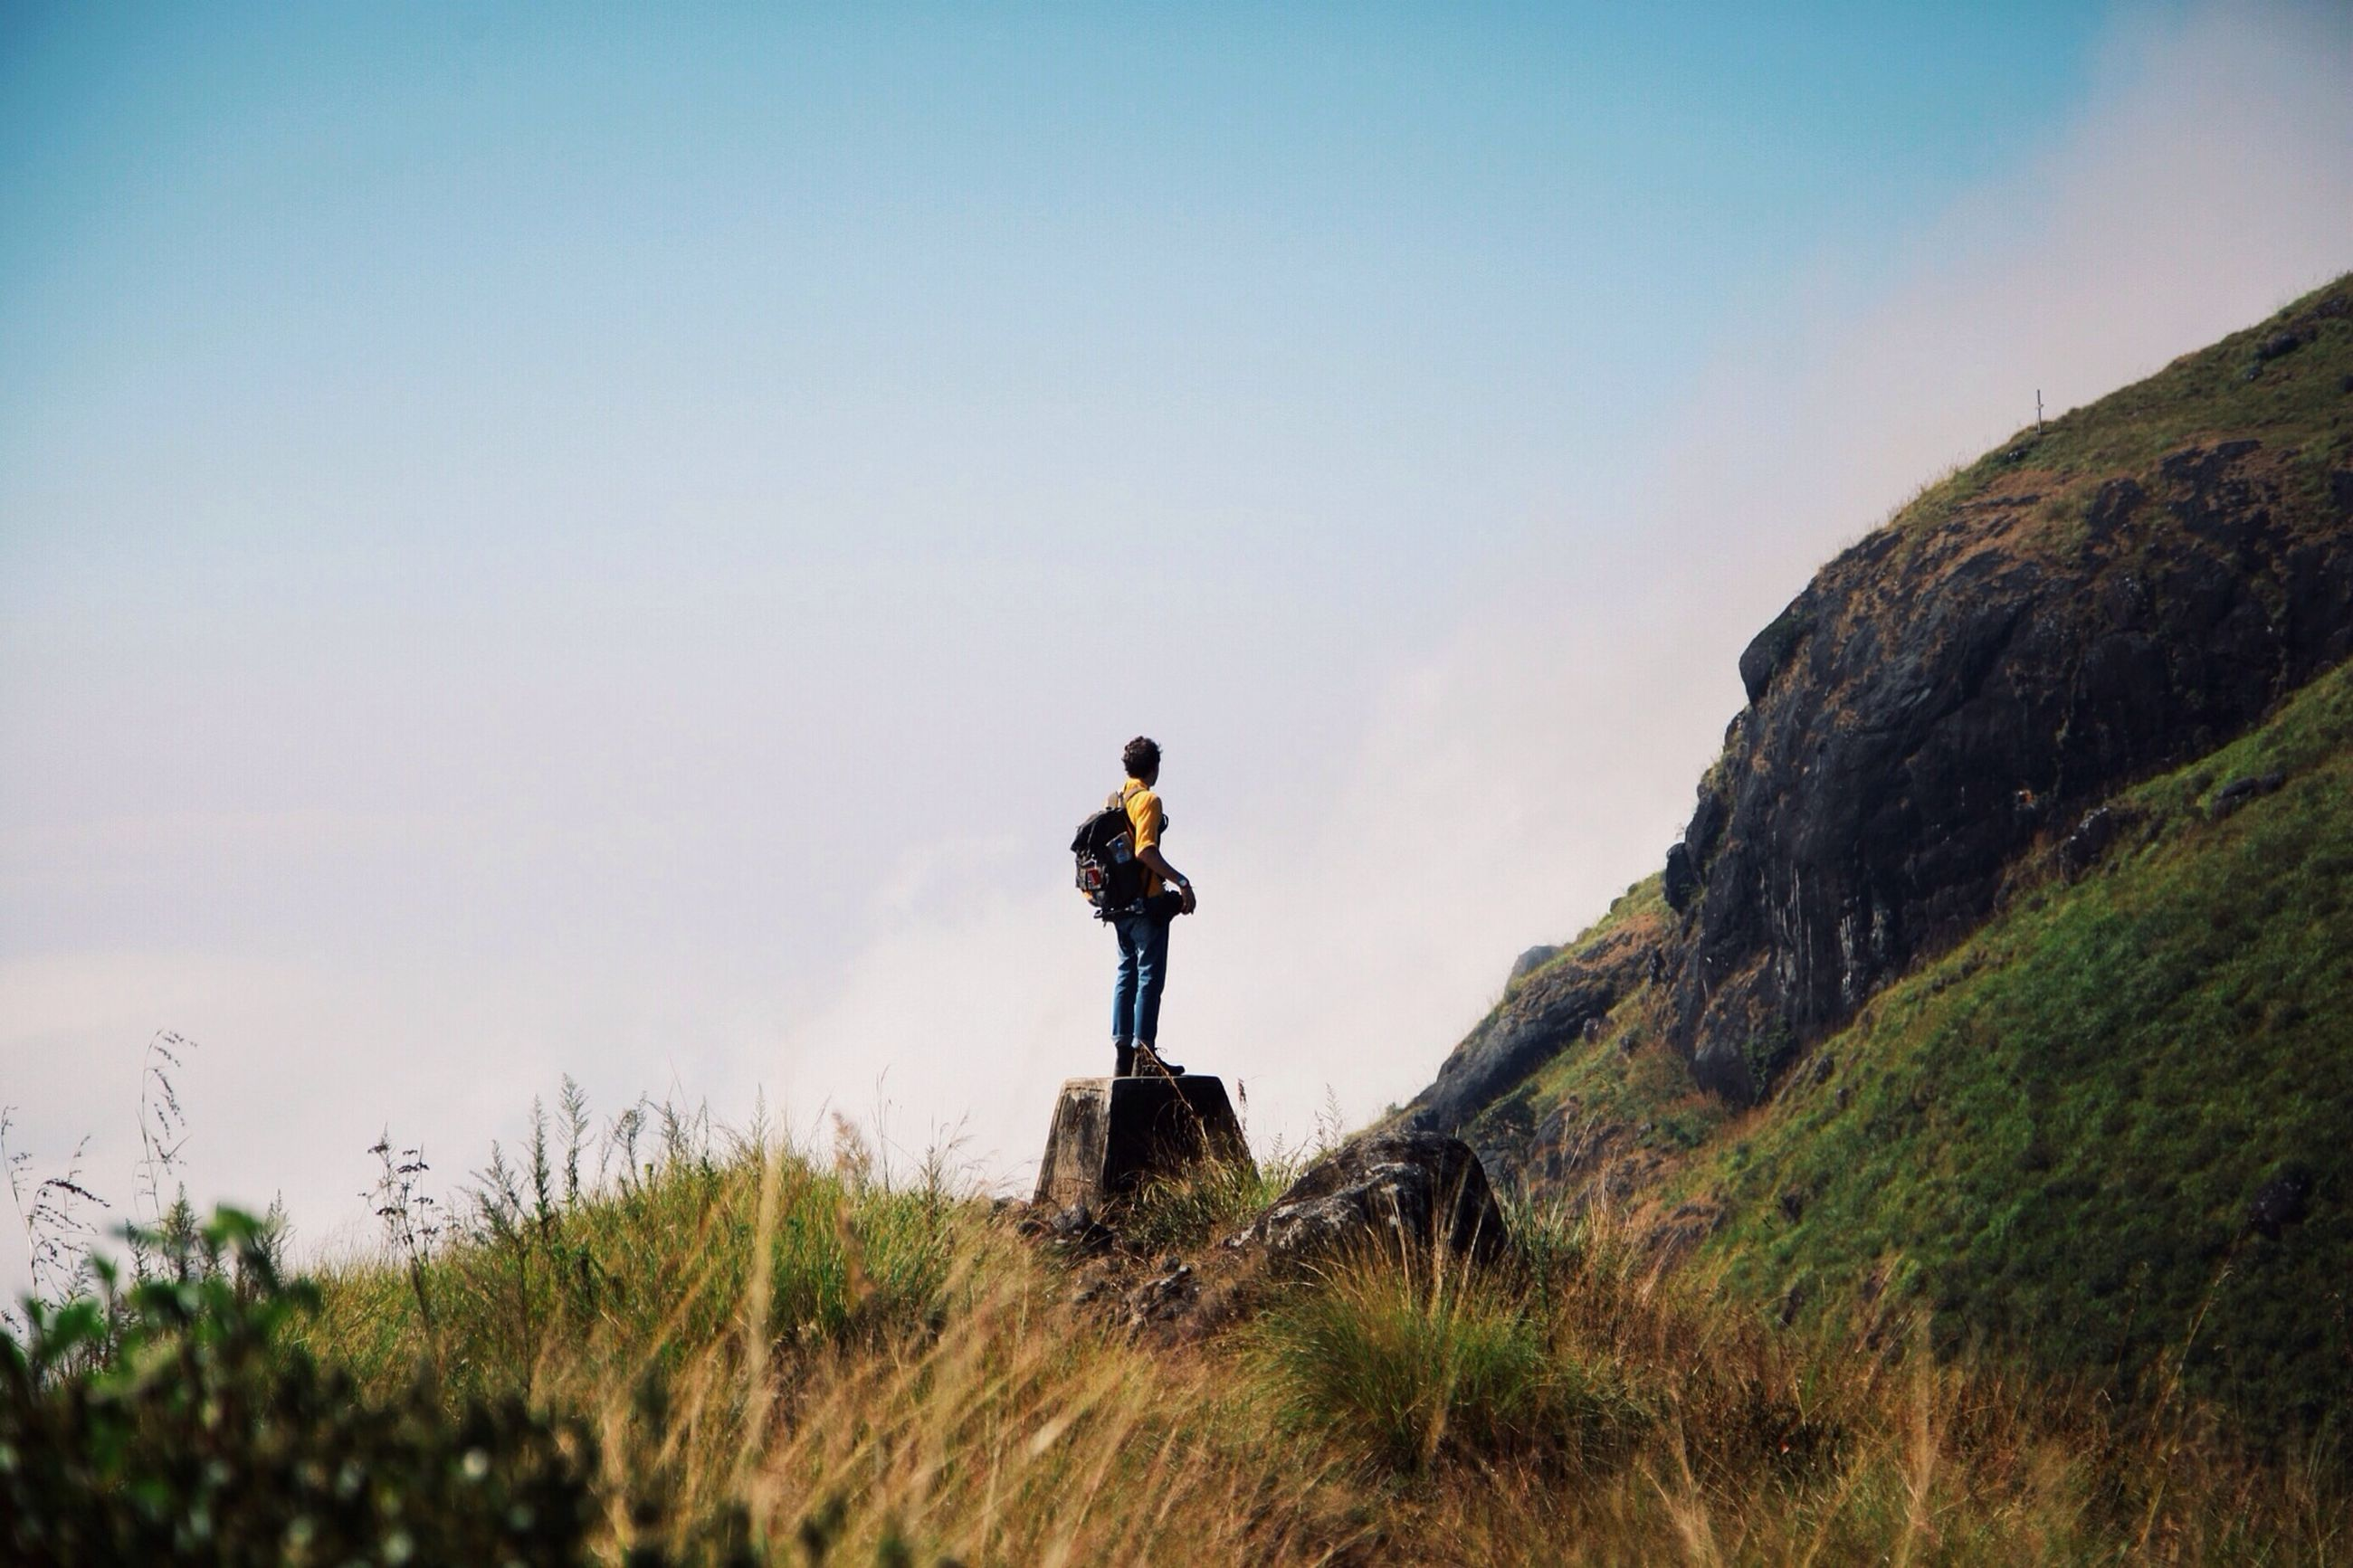 lifestyles, full length, leisure activity, casual clothing, clear sky, standing, men, mountain, rear view, copy space, nature, rock - object, photography themes, young men, landscape, camera - photographic equipment, beauty in nature, backpack